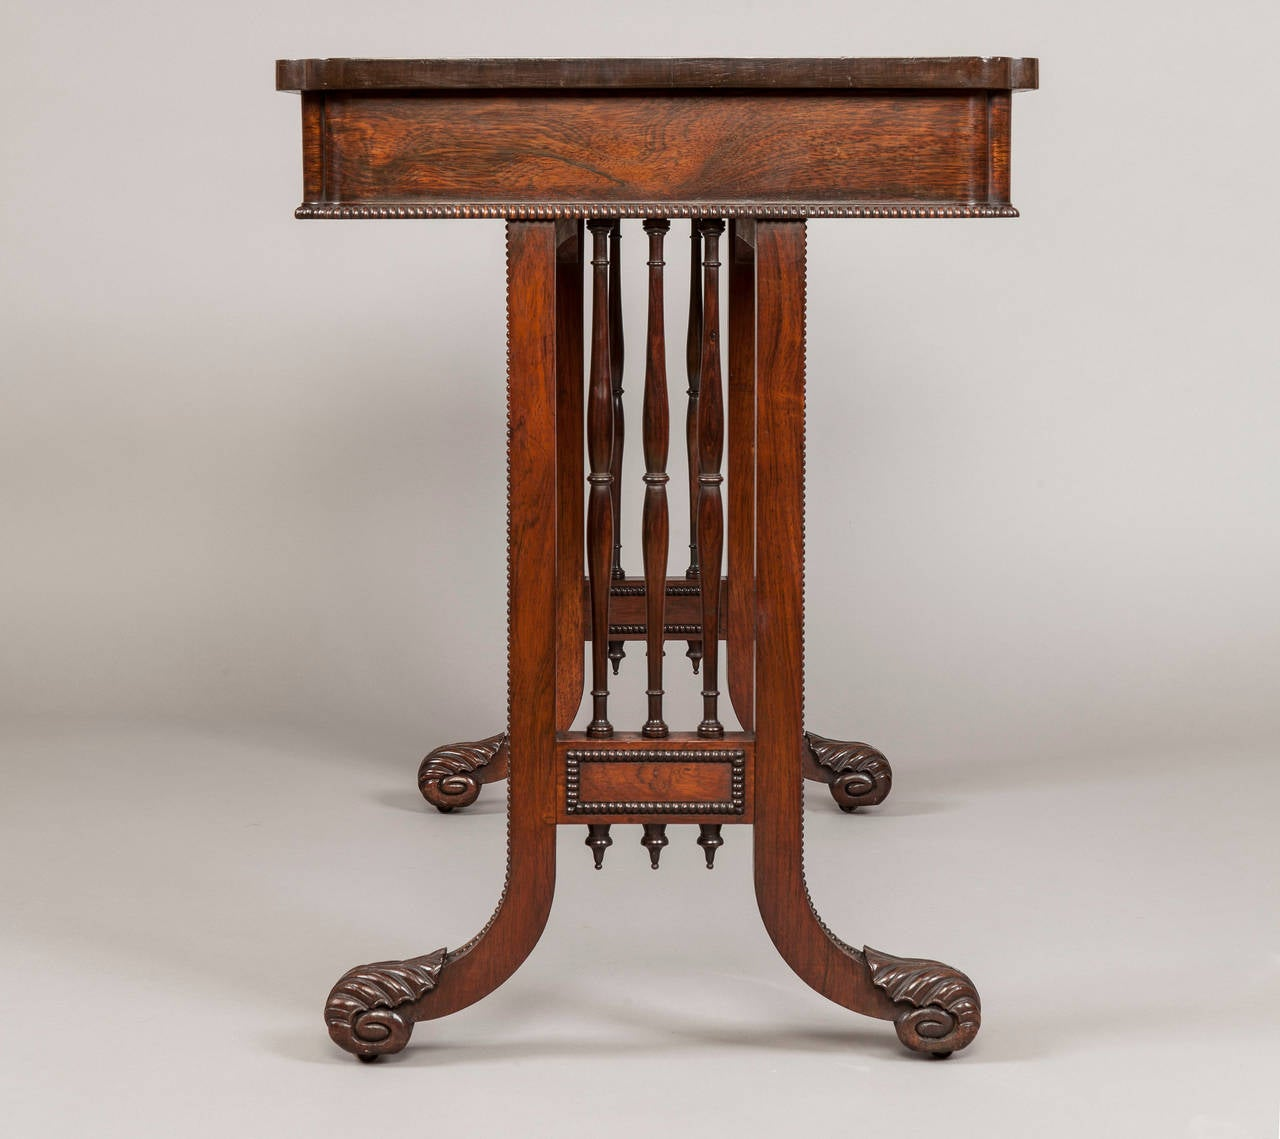 English George IV Period Games Table Attributed to Gillows of Lancaster For Sale